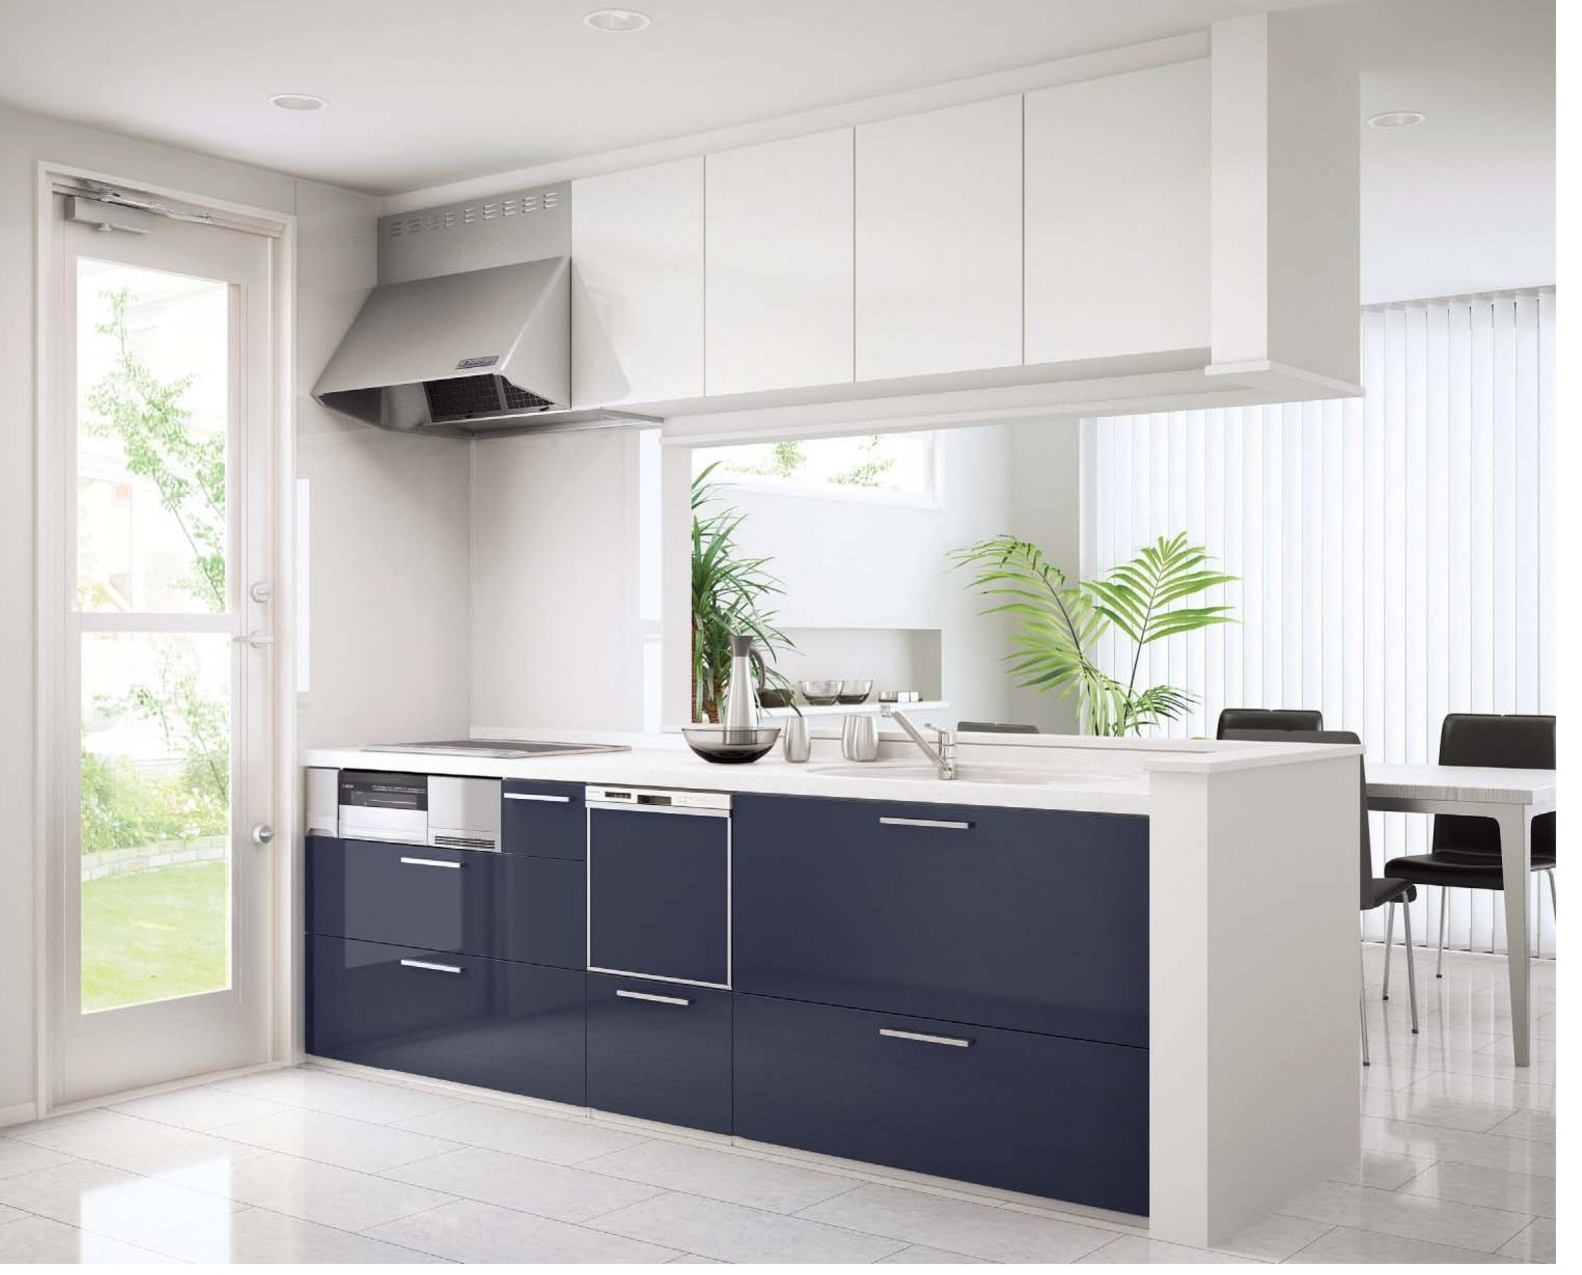 Inspiring IKEA Kitchen Cabinets (View 2 of 10)